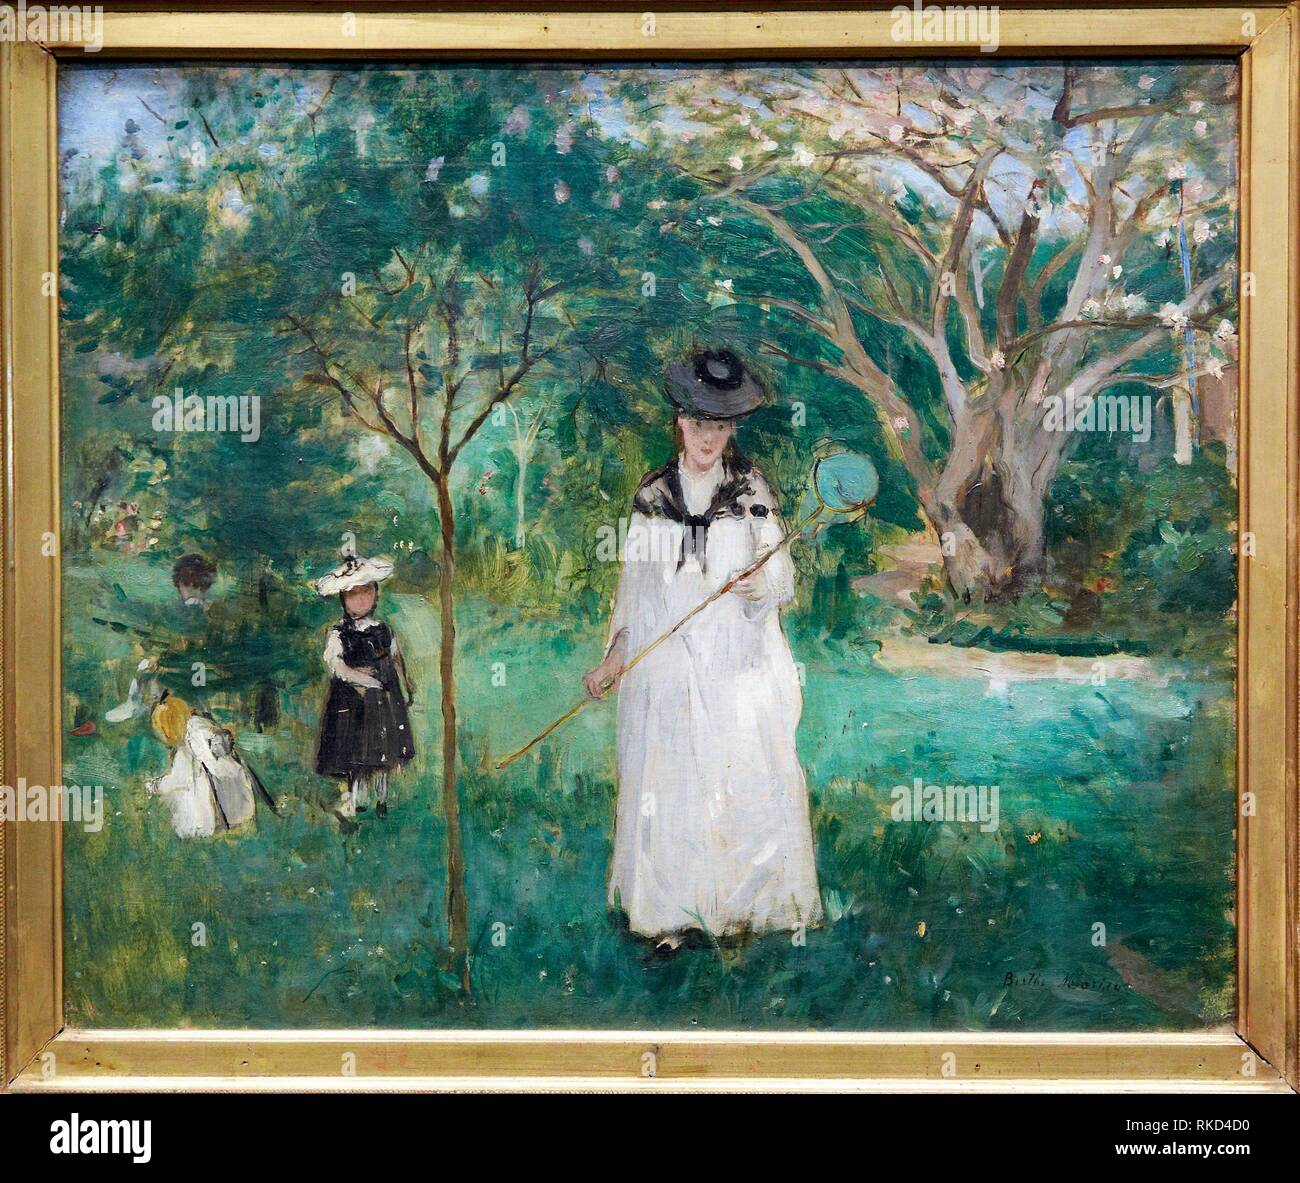 '''Chasing Butterflies'', by Berthe Morisot, 1875, 19th Century, oil on canvas. Musée d'Orsay. Orsay Museum. Paris. France. - Stock Image